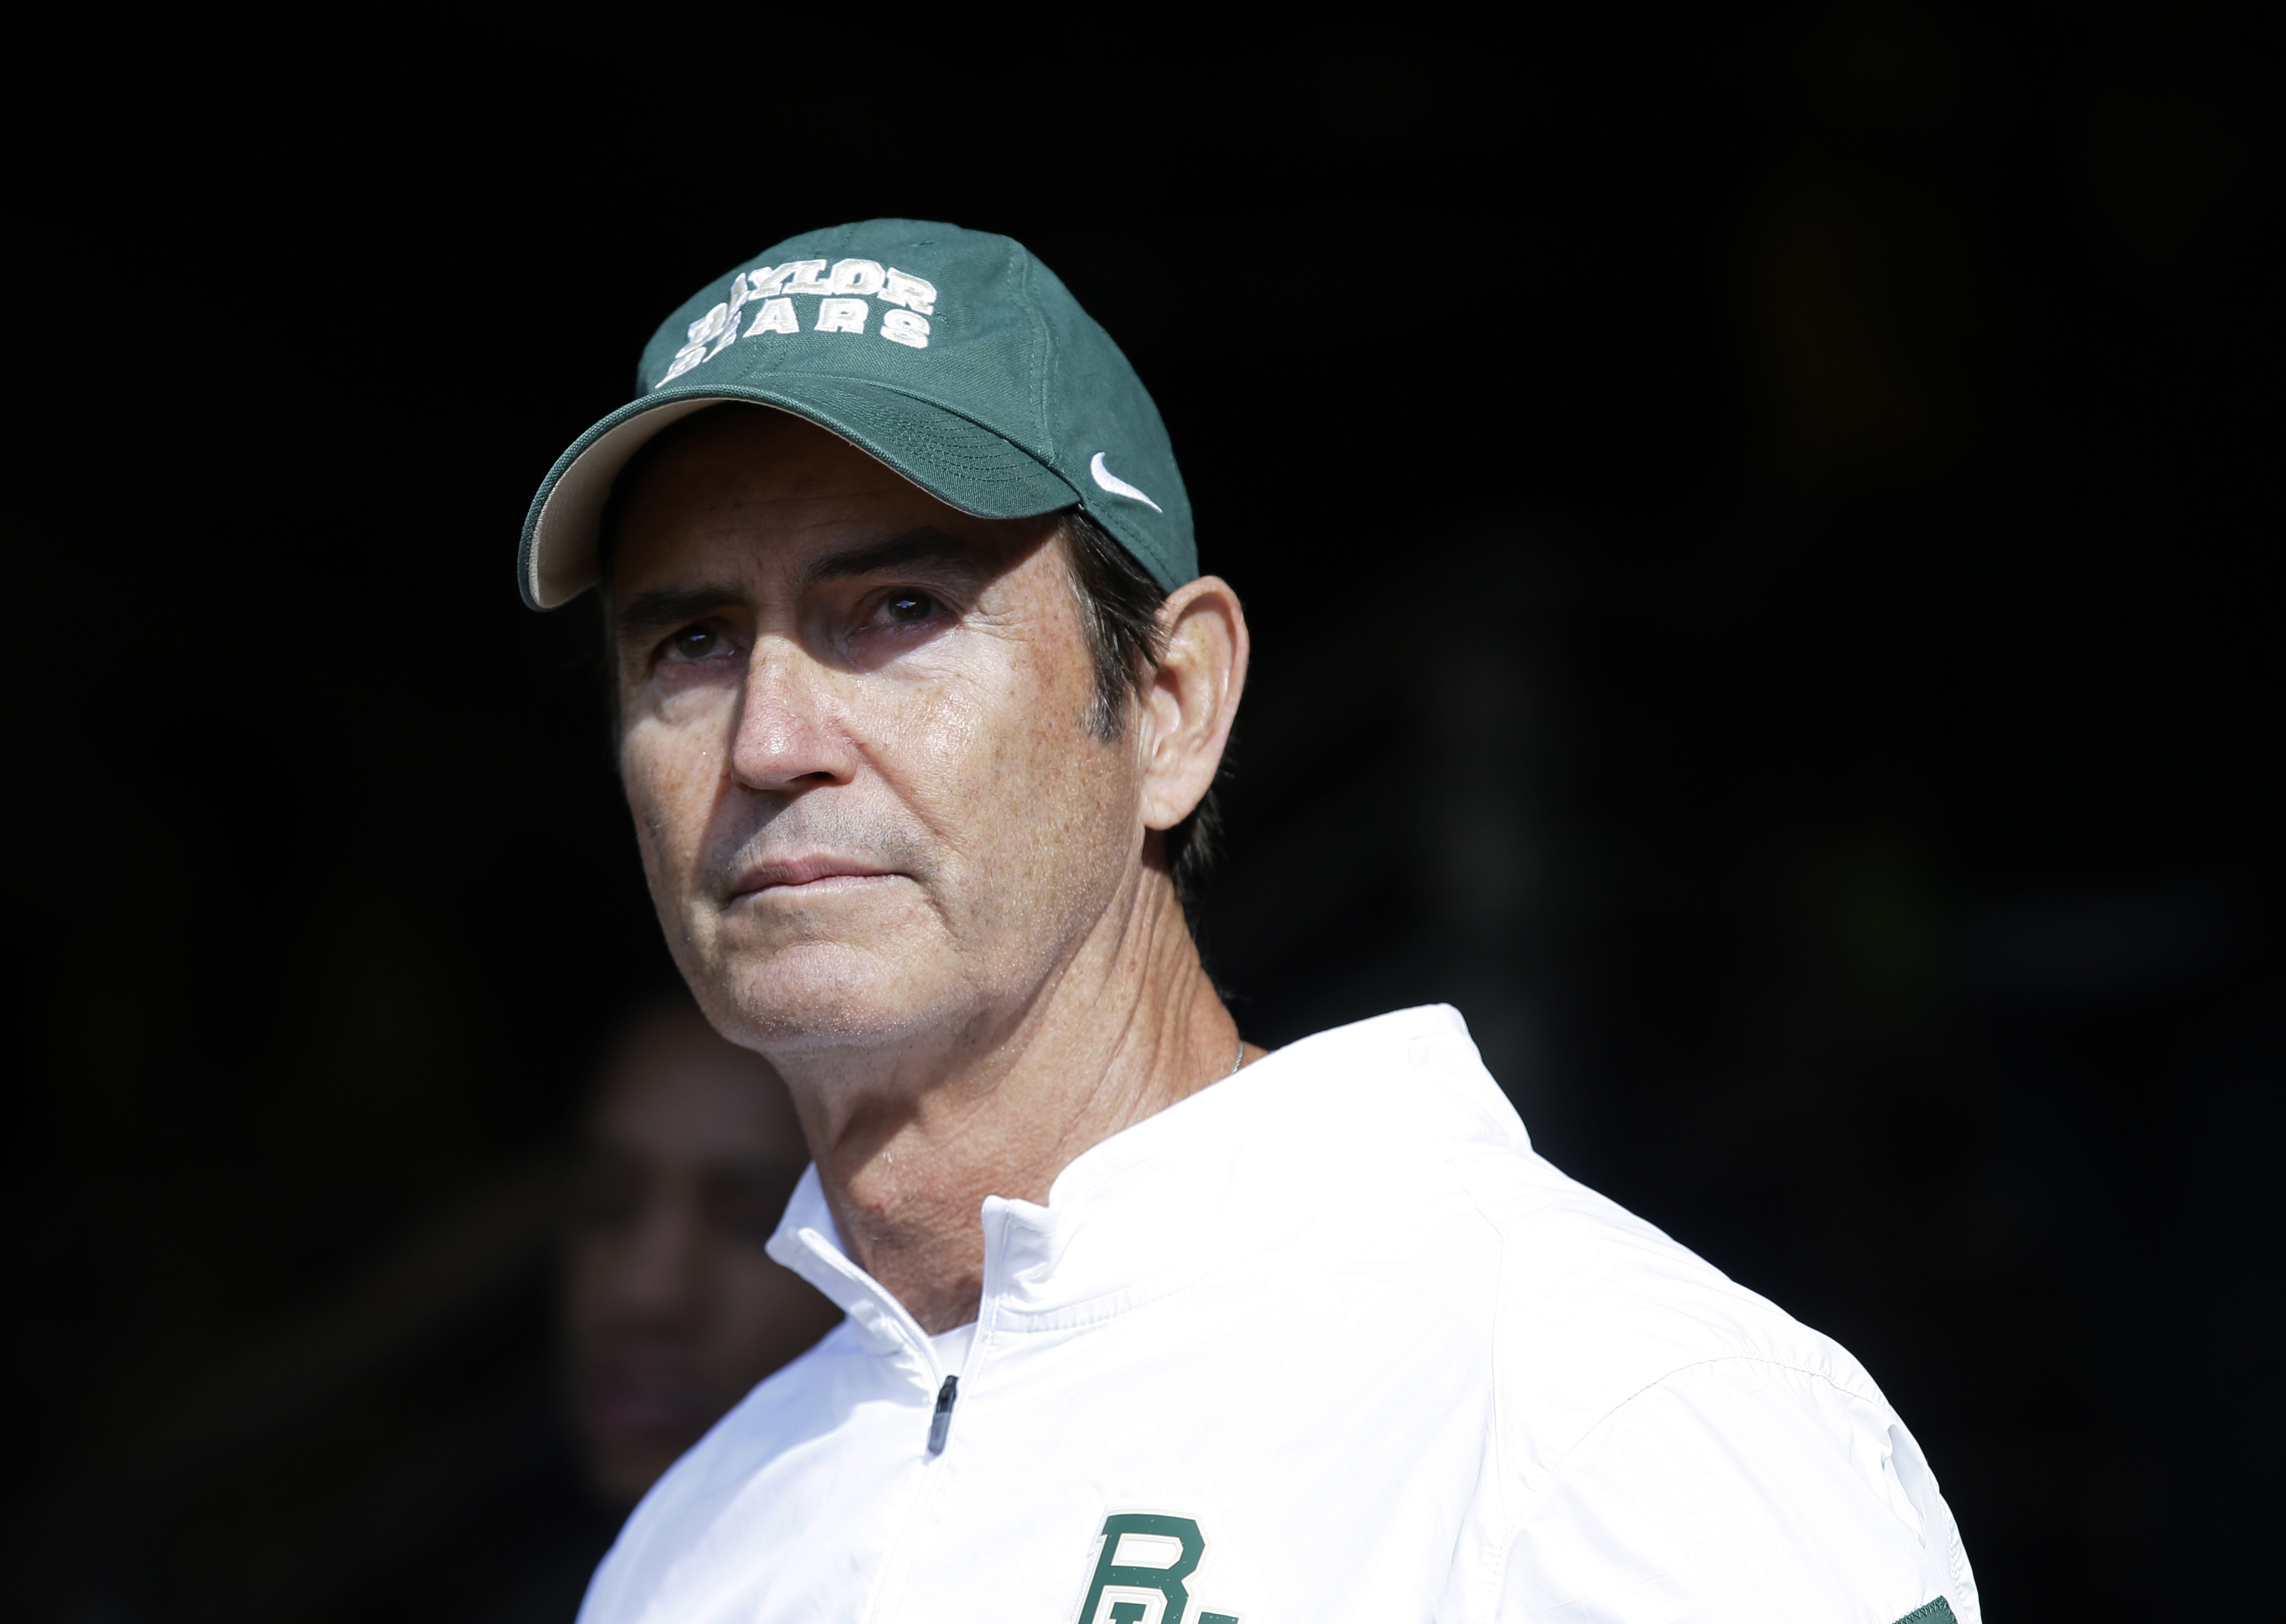 FILE - In this Dec. 5, 2015, file photo, Baylor coach Art Briles stands in the tunnel before the team's NCAA college football game against Texas in Waco, Texas. Former Baylor coach Briles is confident he will get another chance and says he has learned som